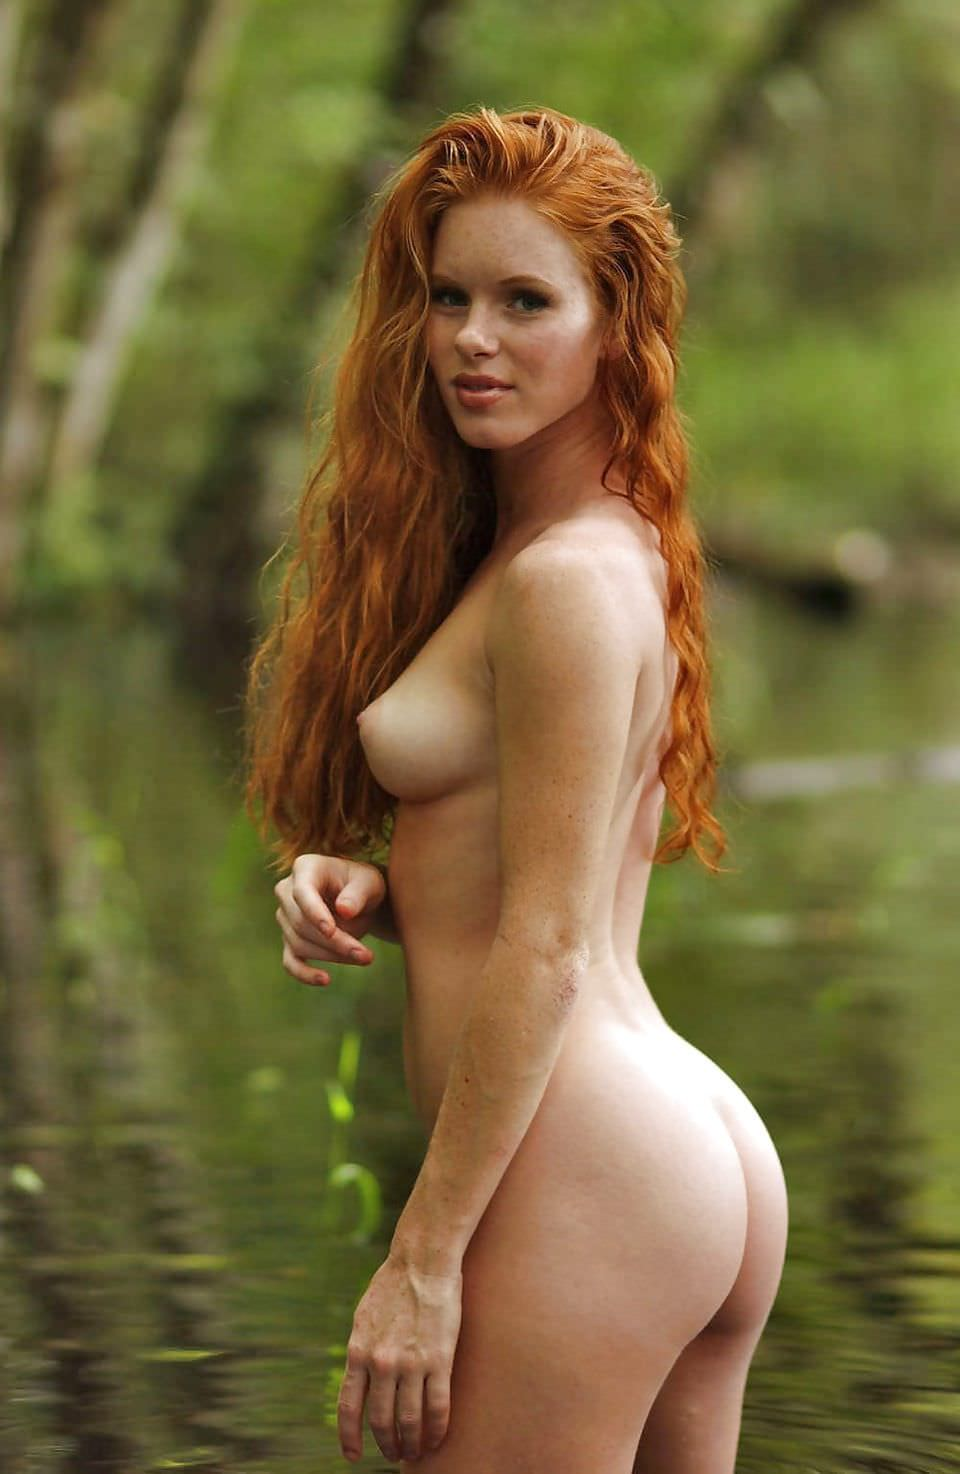 Speaking, Hot nude redhead with freckles necessary